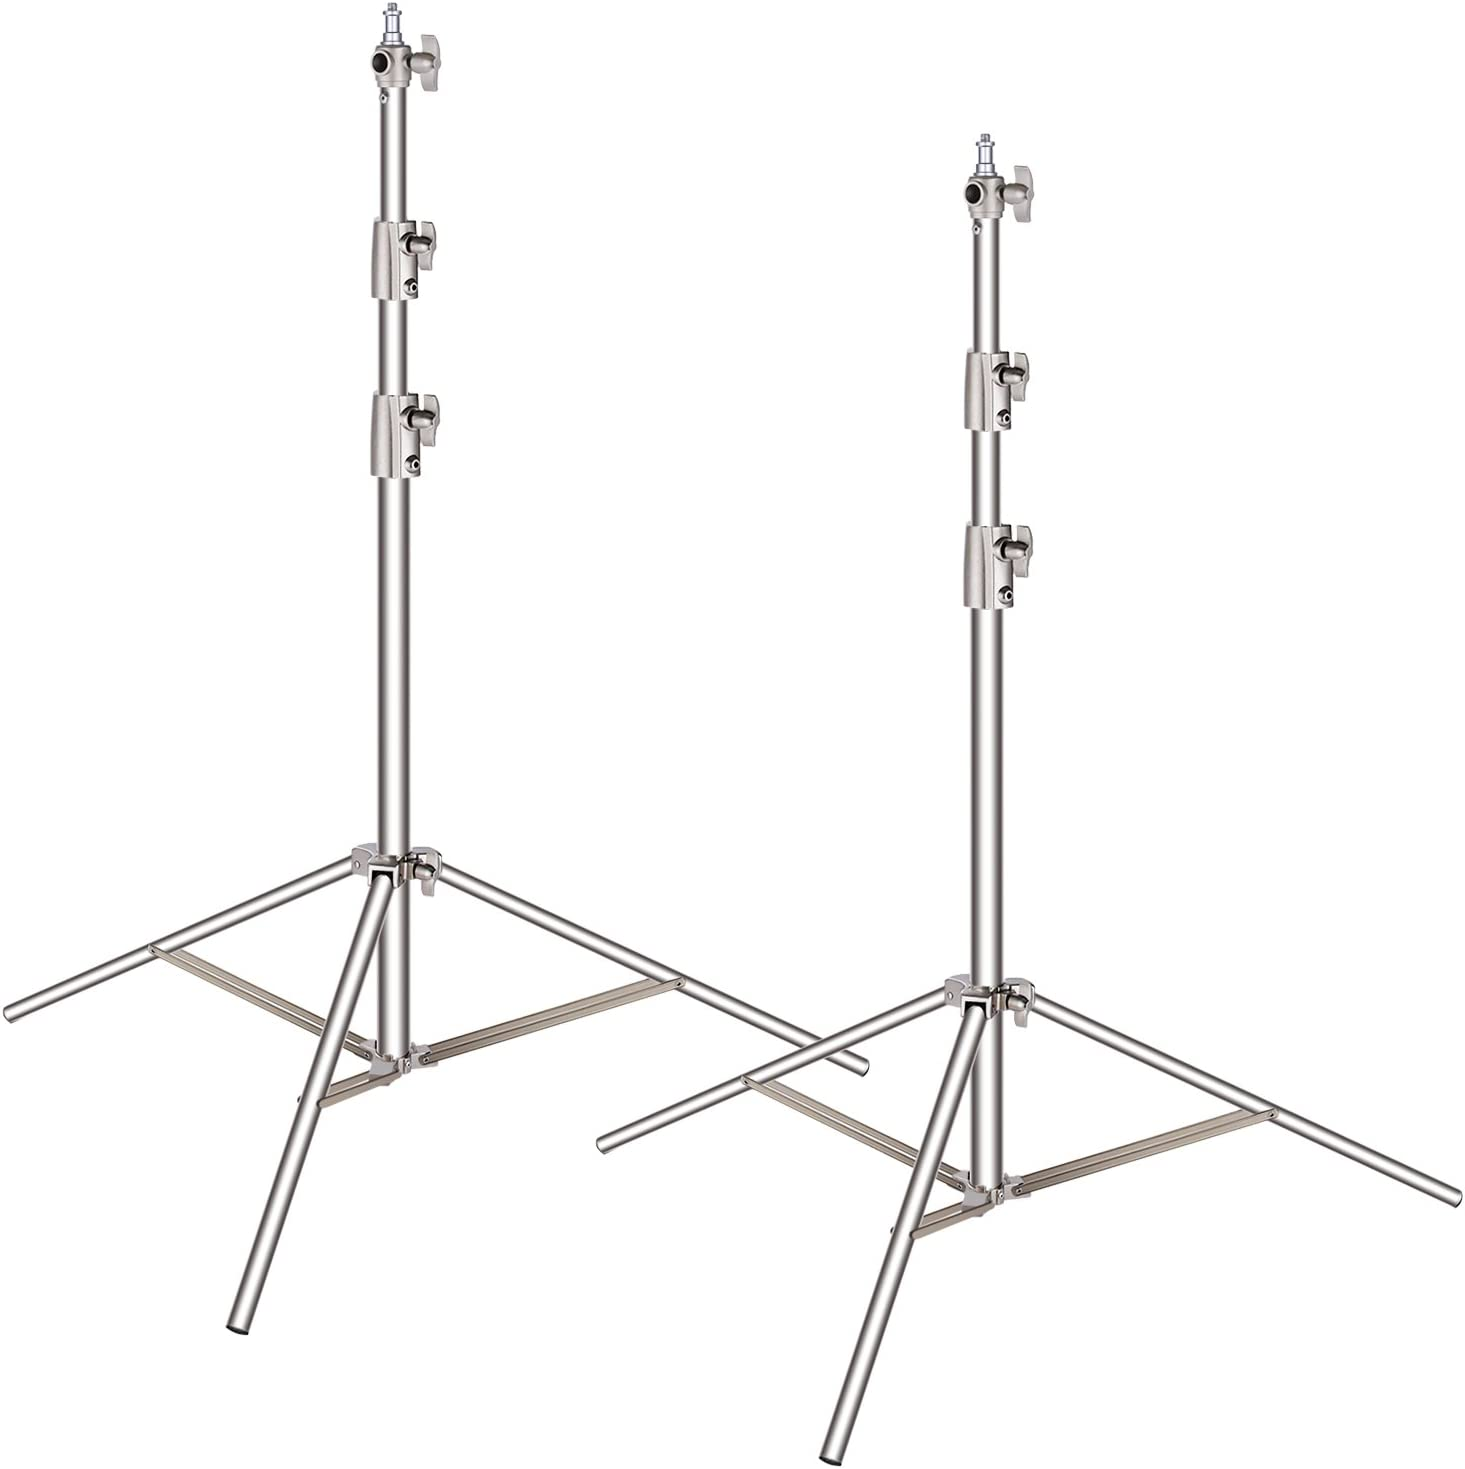 Black, 4 3-Section Light Stand with Detachable Legs